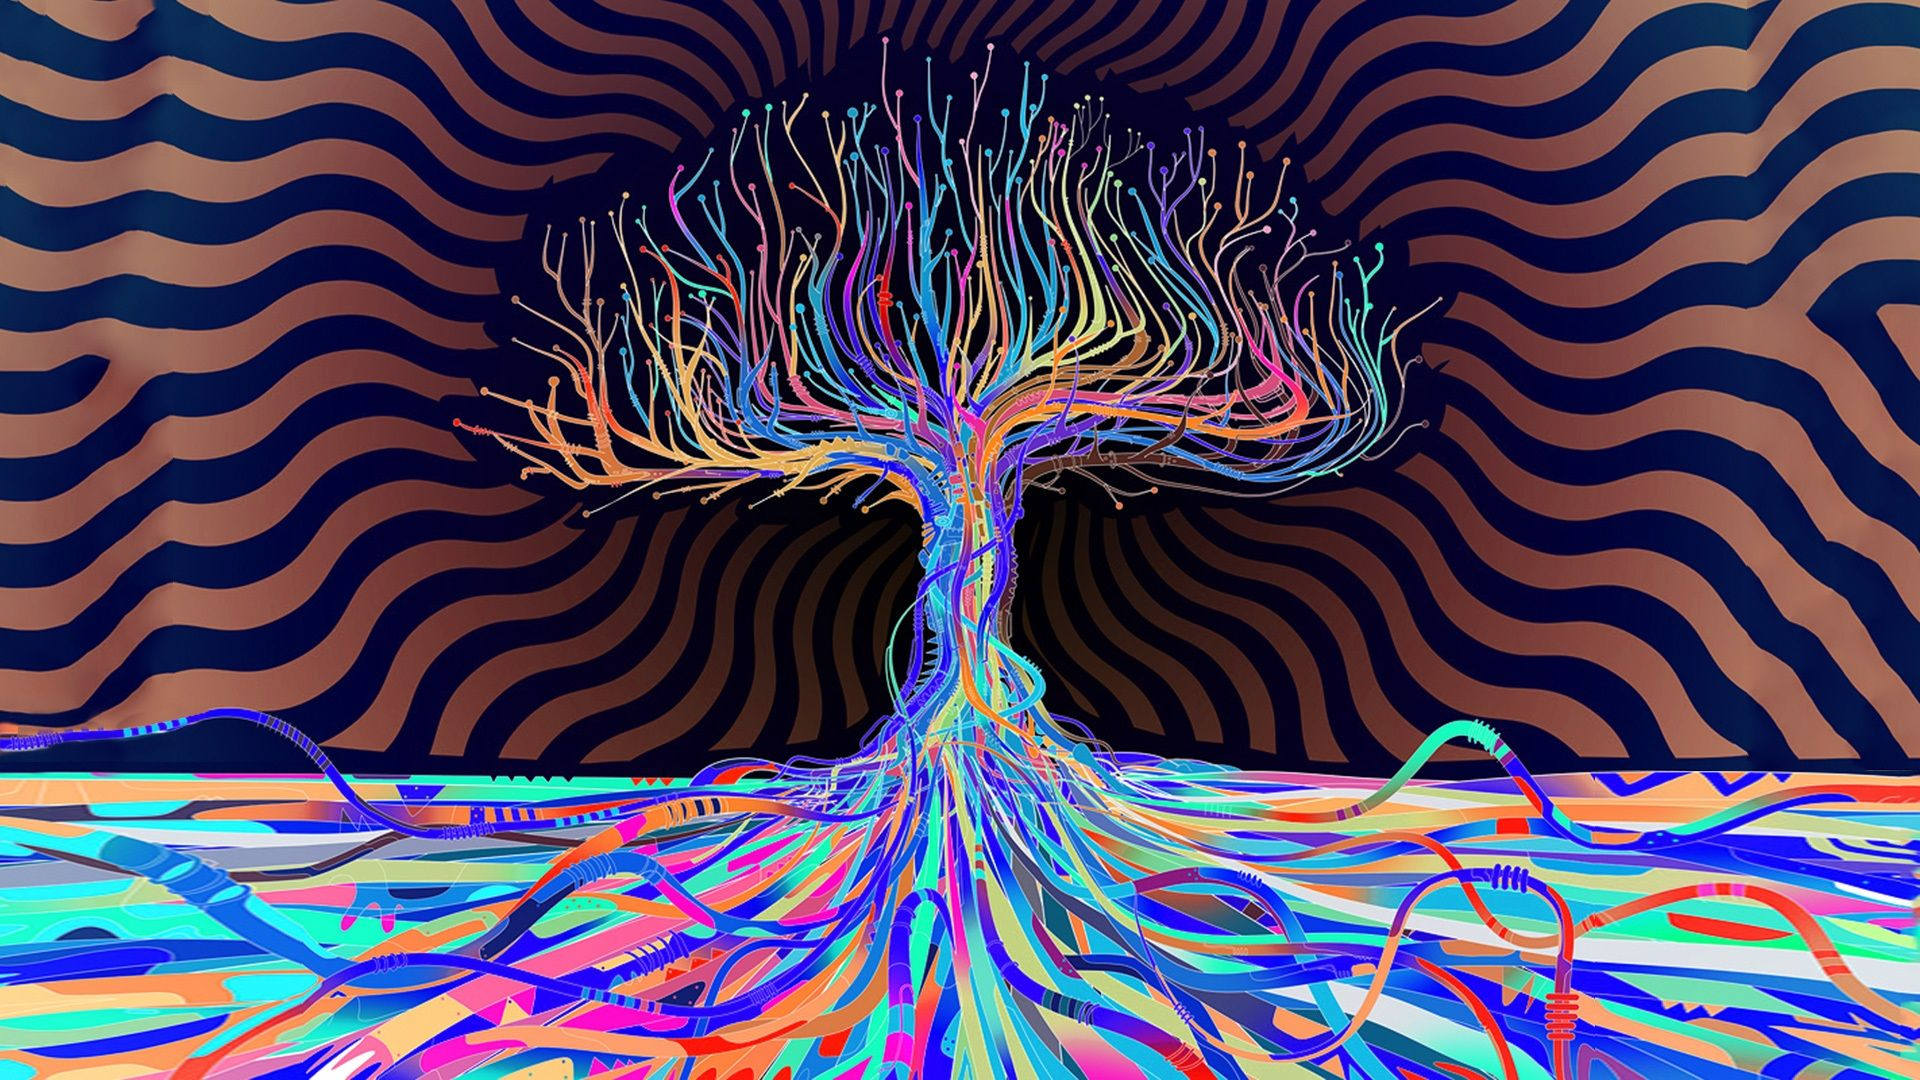 Psychedelic Hd